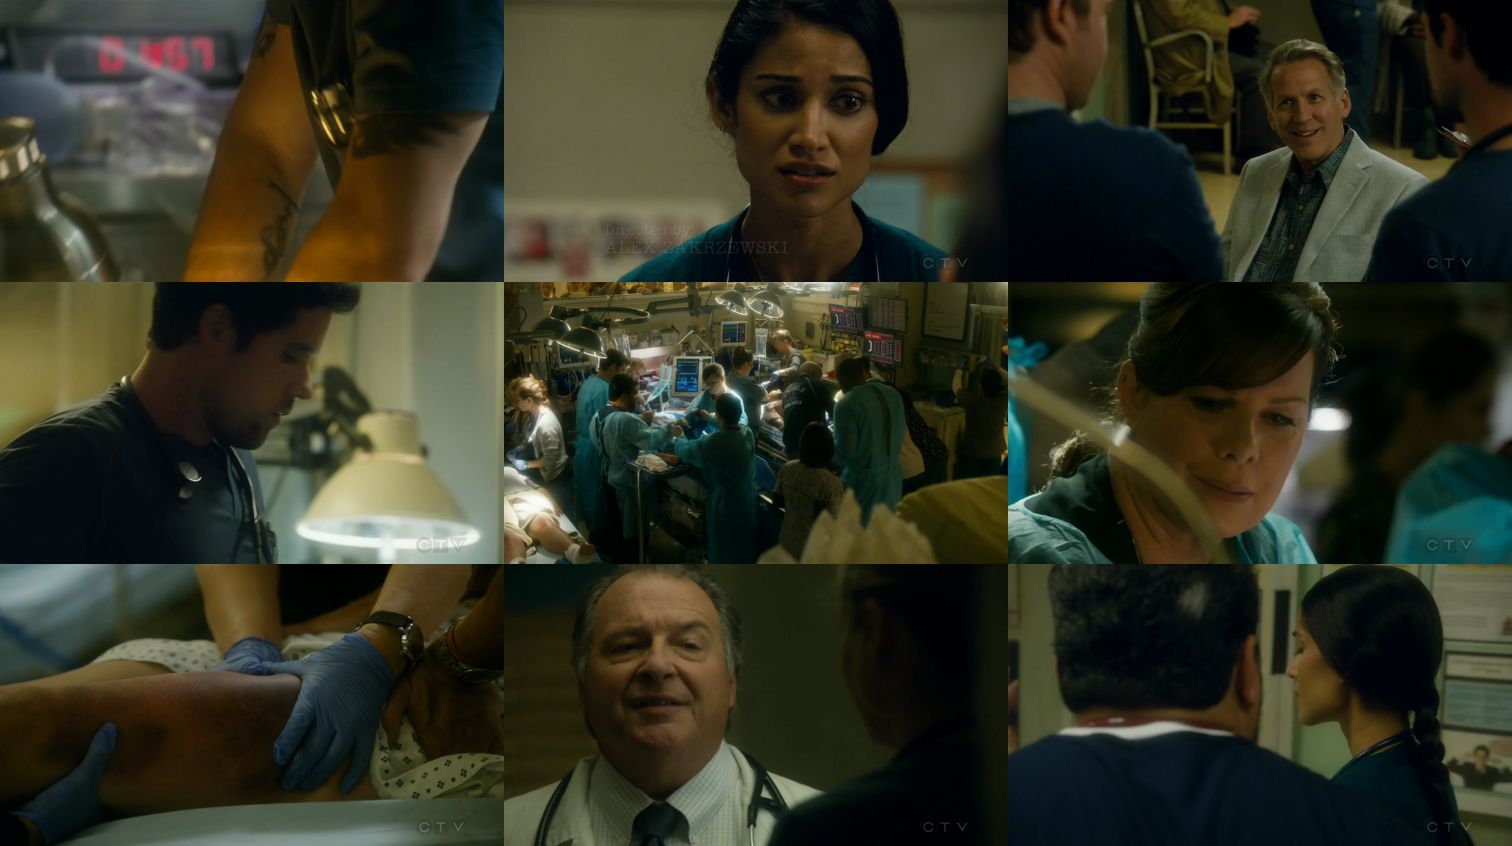 Code Black S01E08 720p HDTV X264-DIMENSION